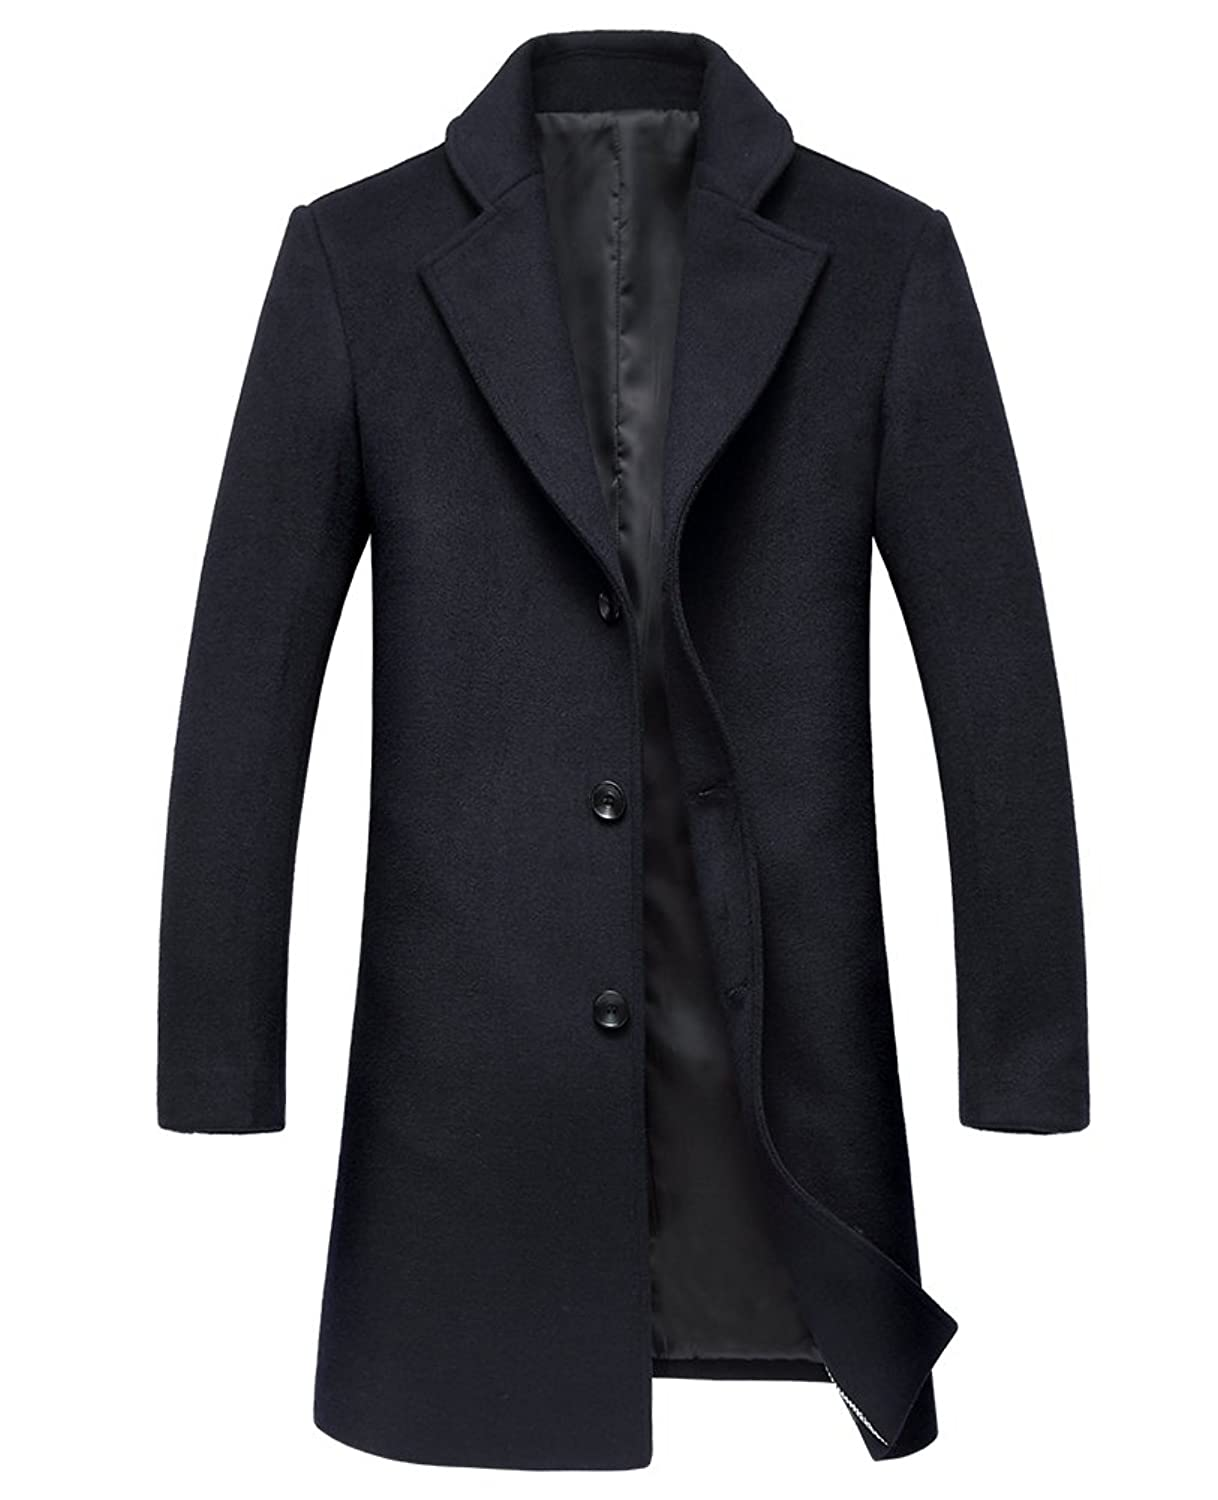 SK Studio Men's Winter Warm Soft Wool Blend Pea Coats Slim Fit